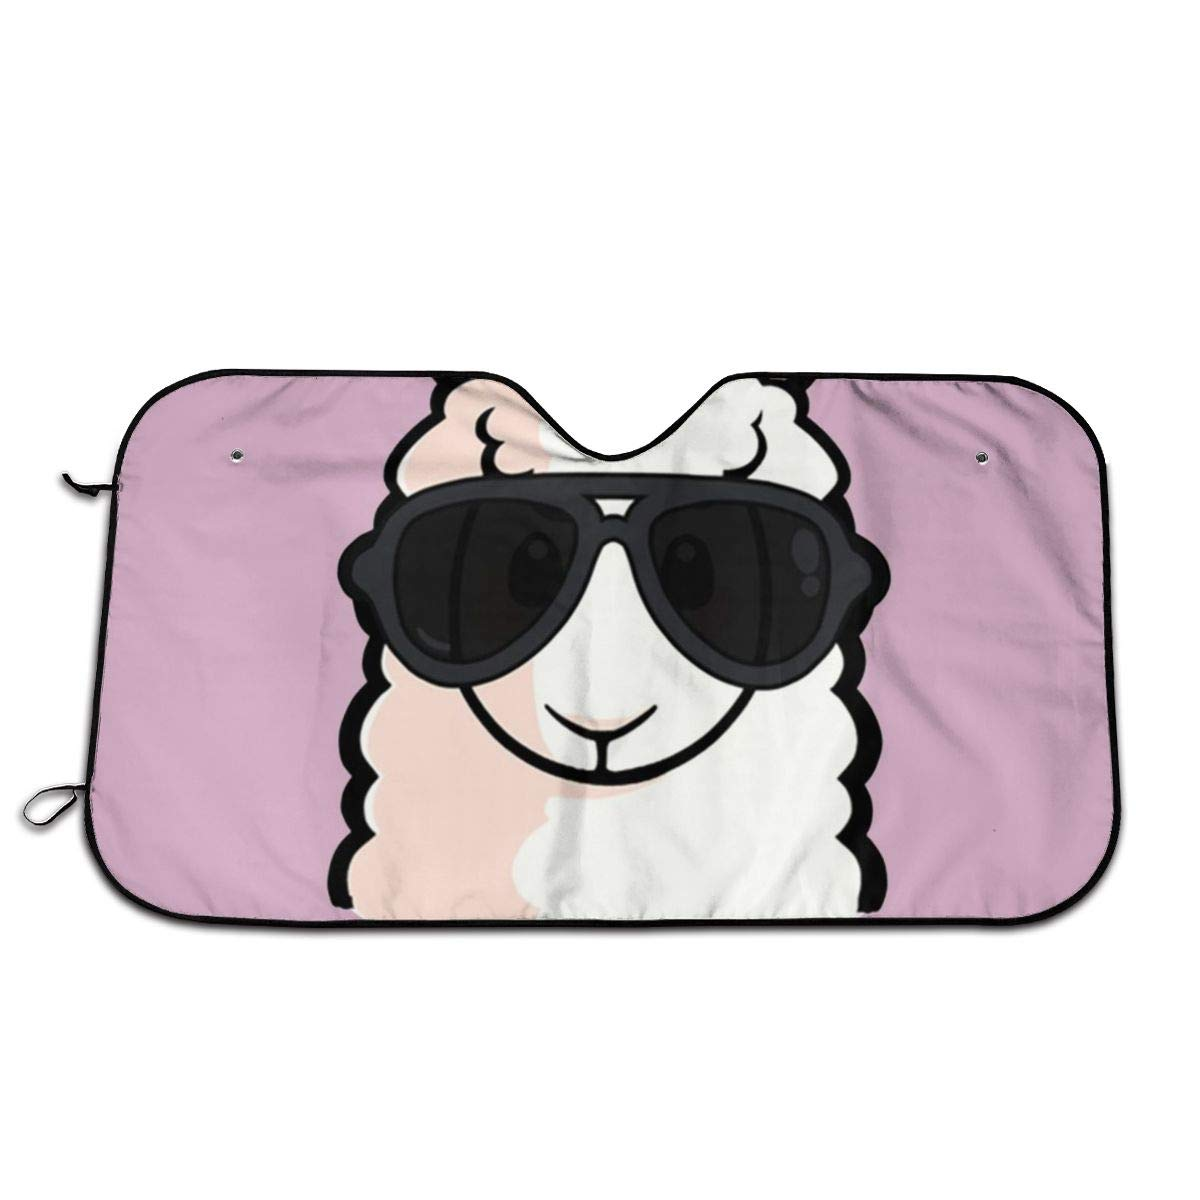 Durable Clearance SALE! Limited time! Car Sunshade A Outlet SALE Bespectacled Windshield Sun Alpaca Shade